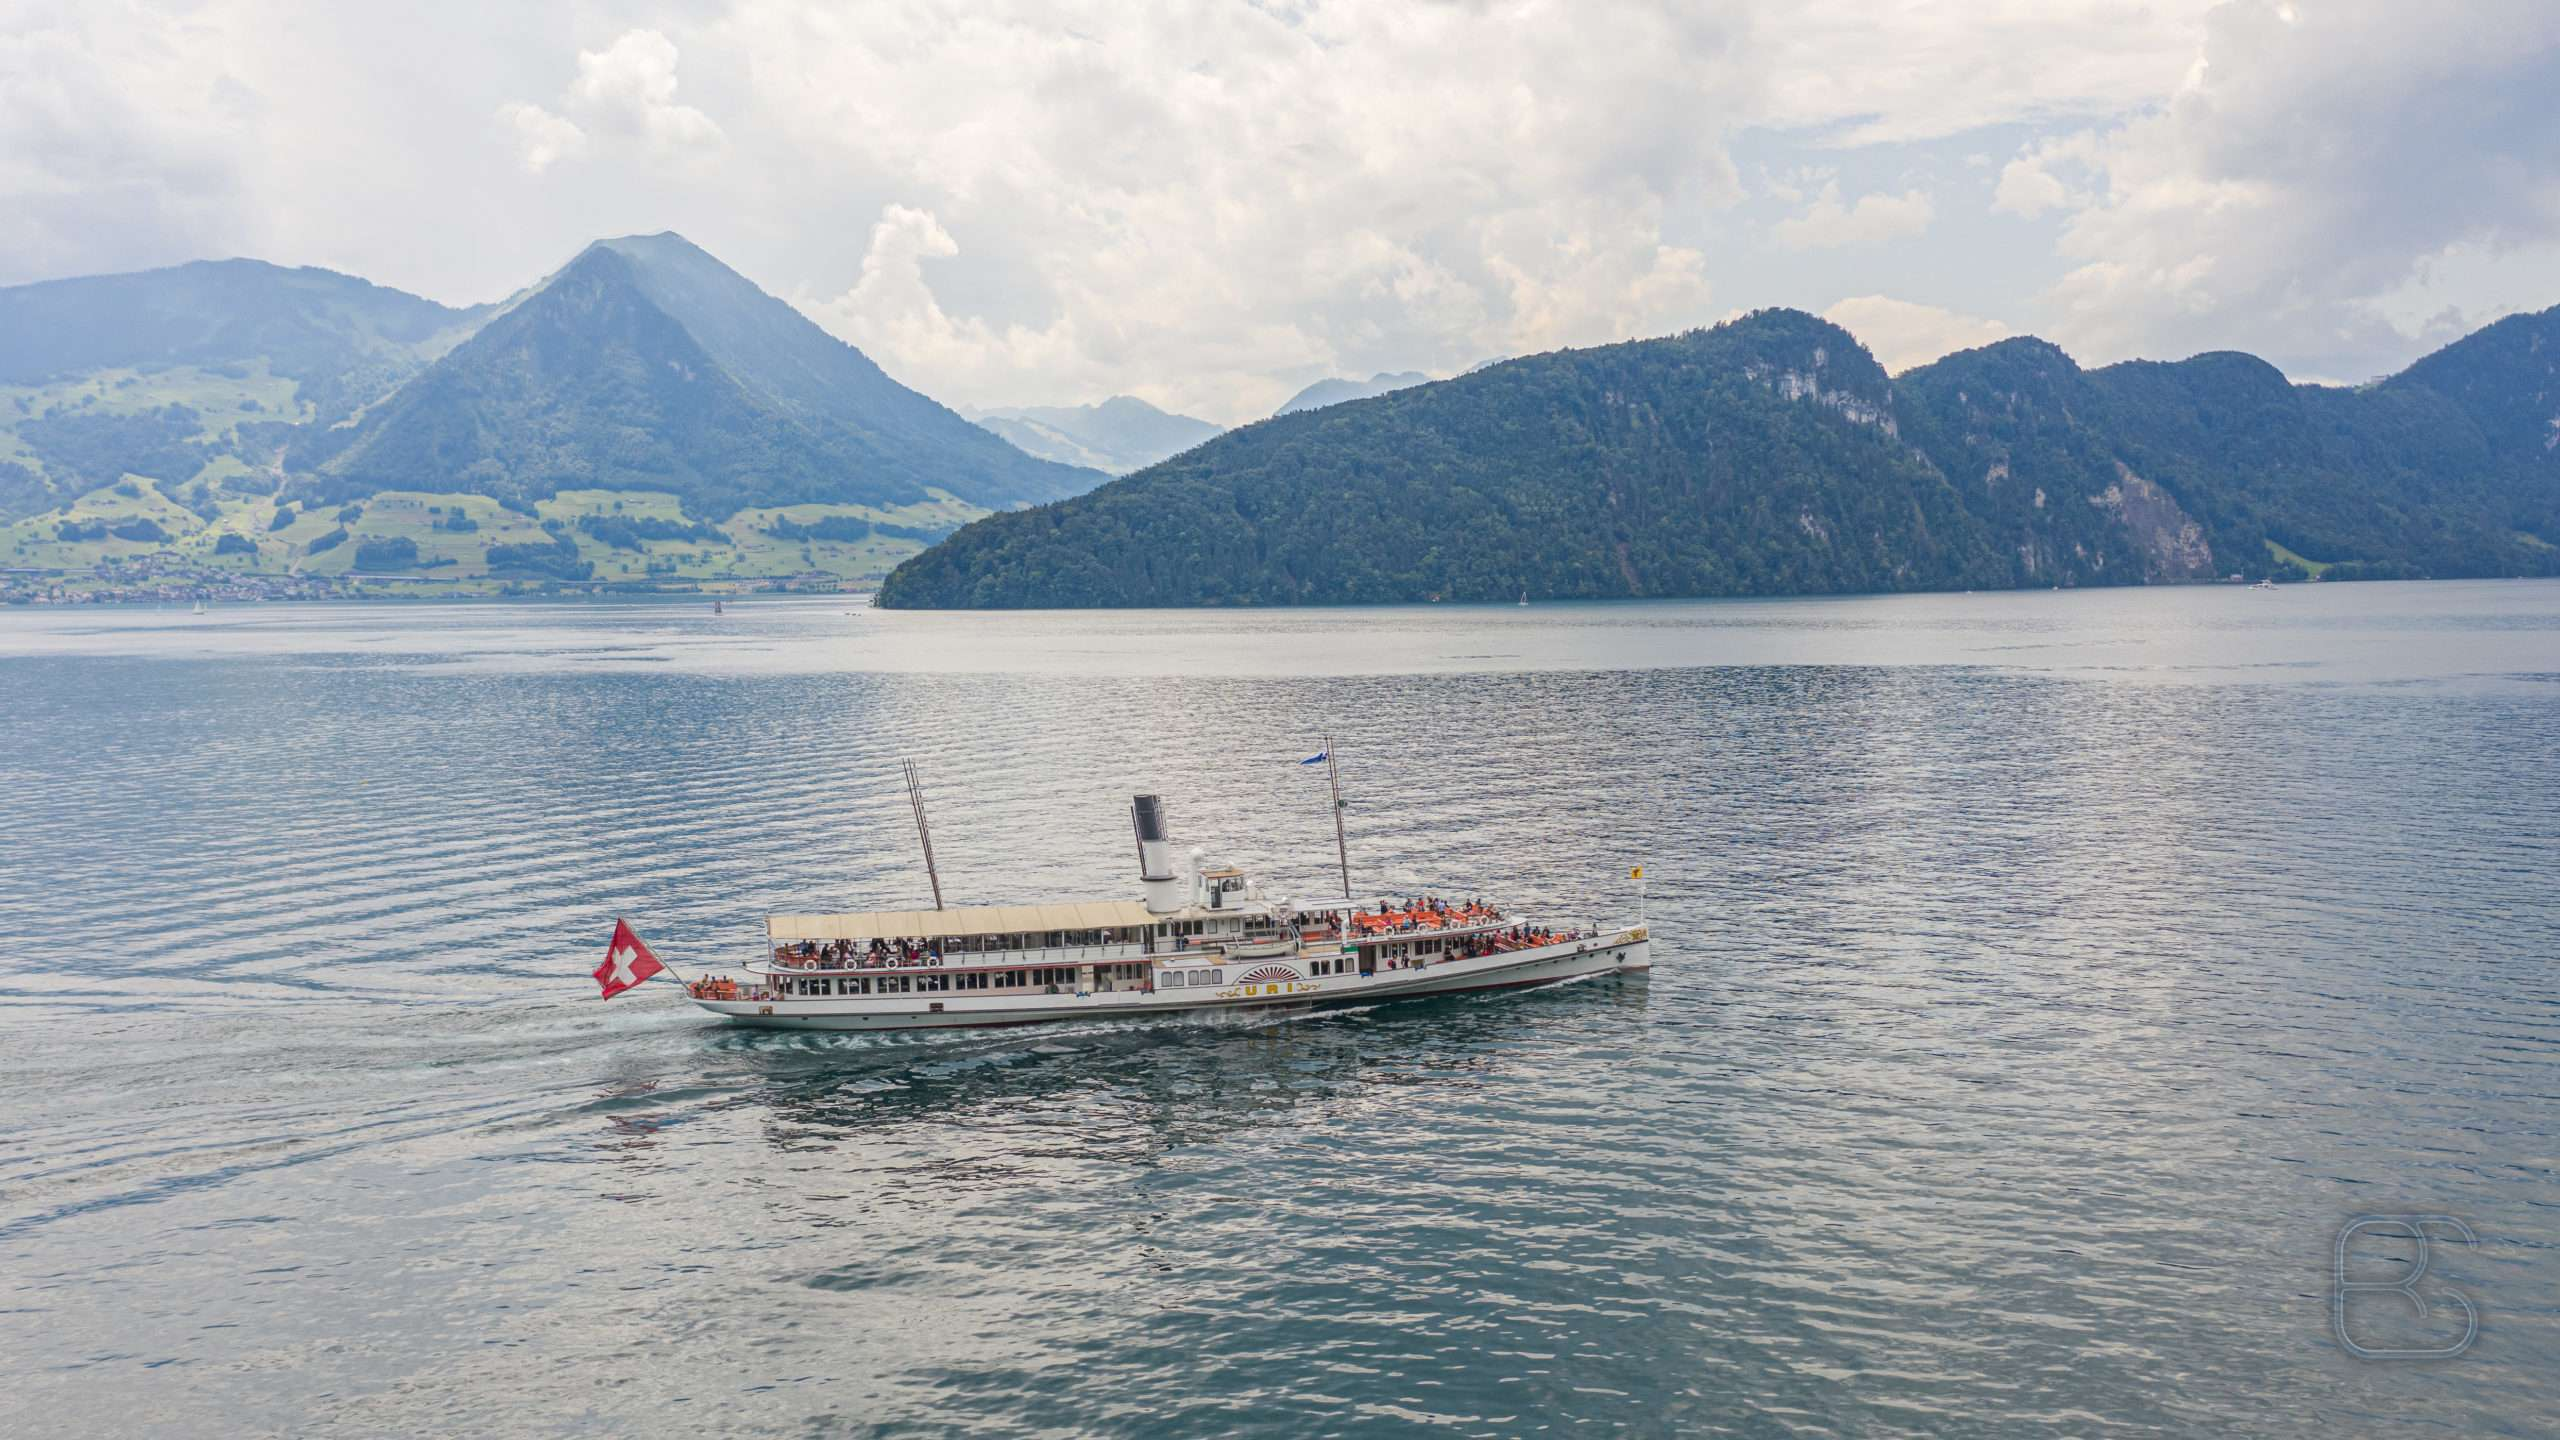 The Steamboat Uri on lake Lucern